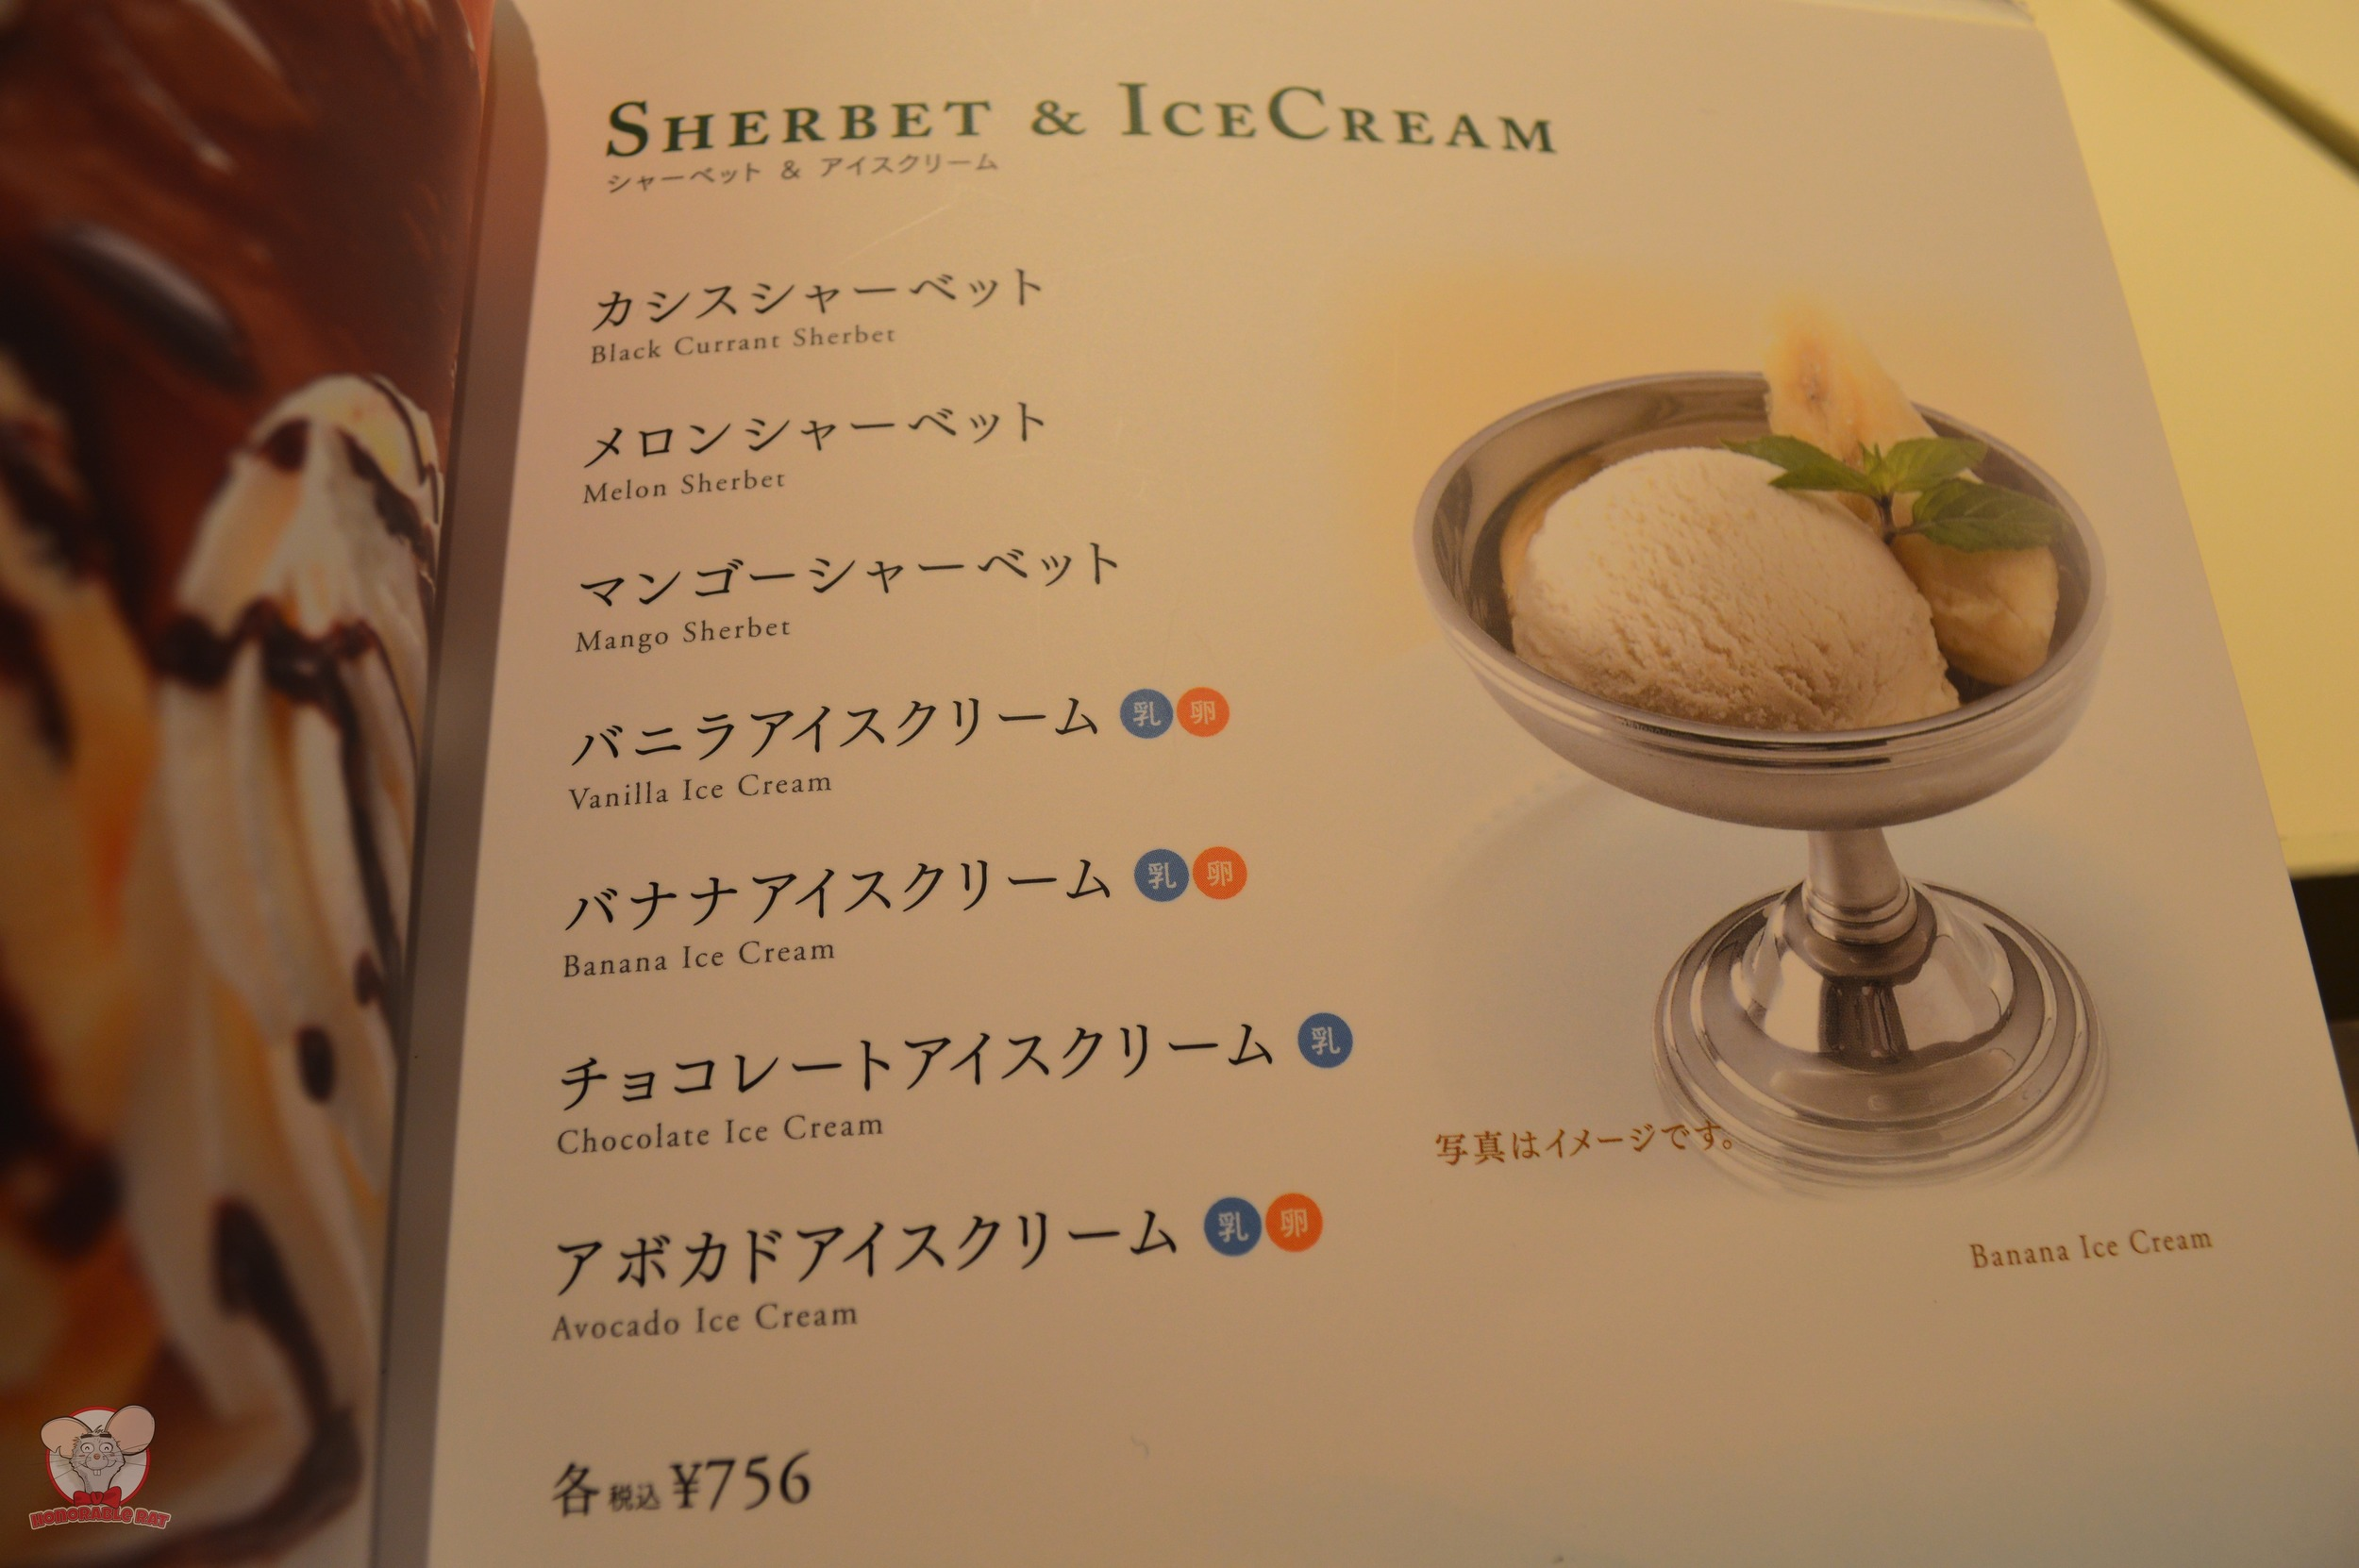 Sherbet & Ice Cream